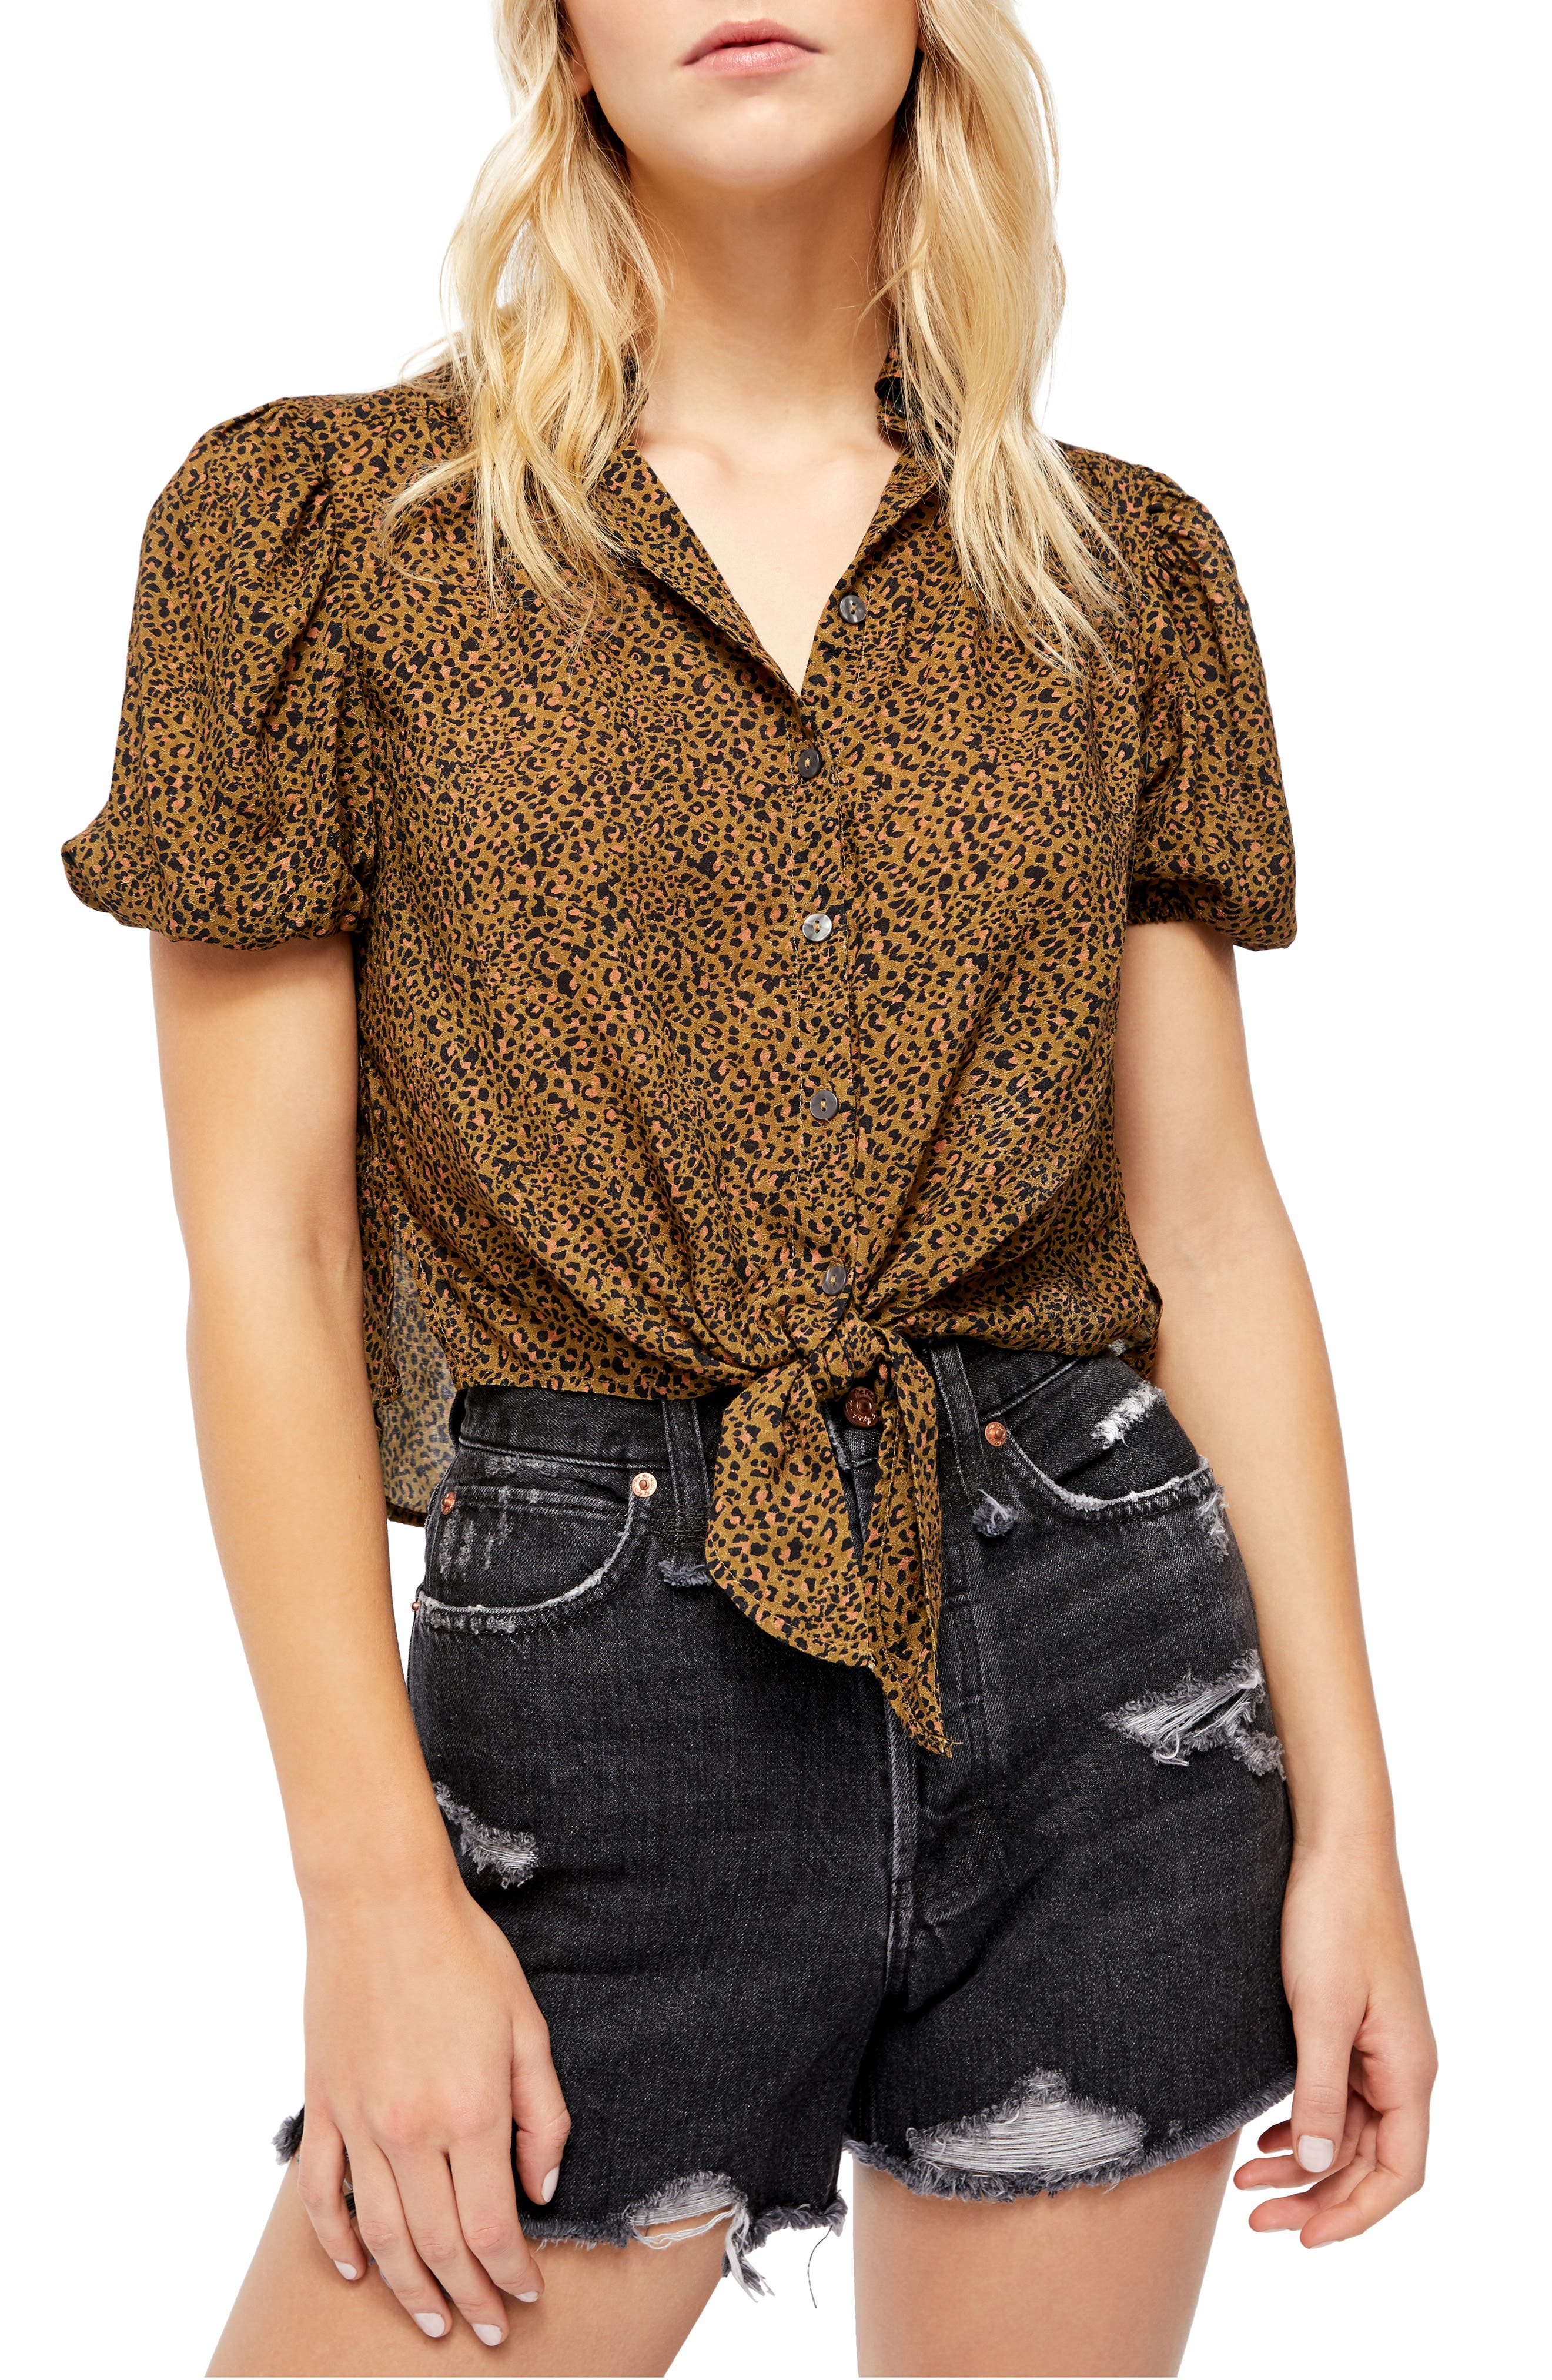 An exotic print enlivens a button-front blouse finished with adjustable ties at the hem. Style Name: Free People Celia Animal Print Blouse. Style Number: 6047234. Available in stores.